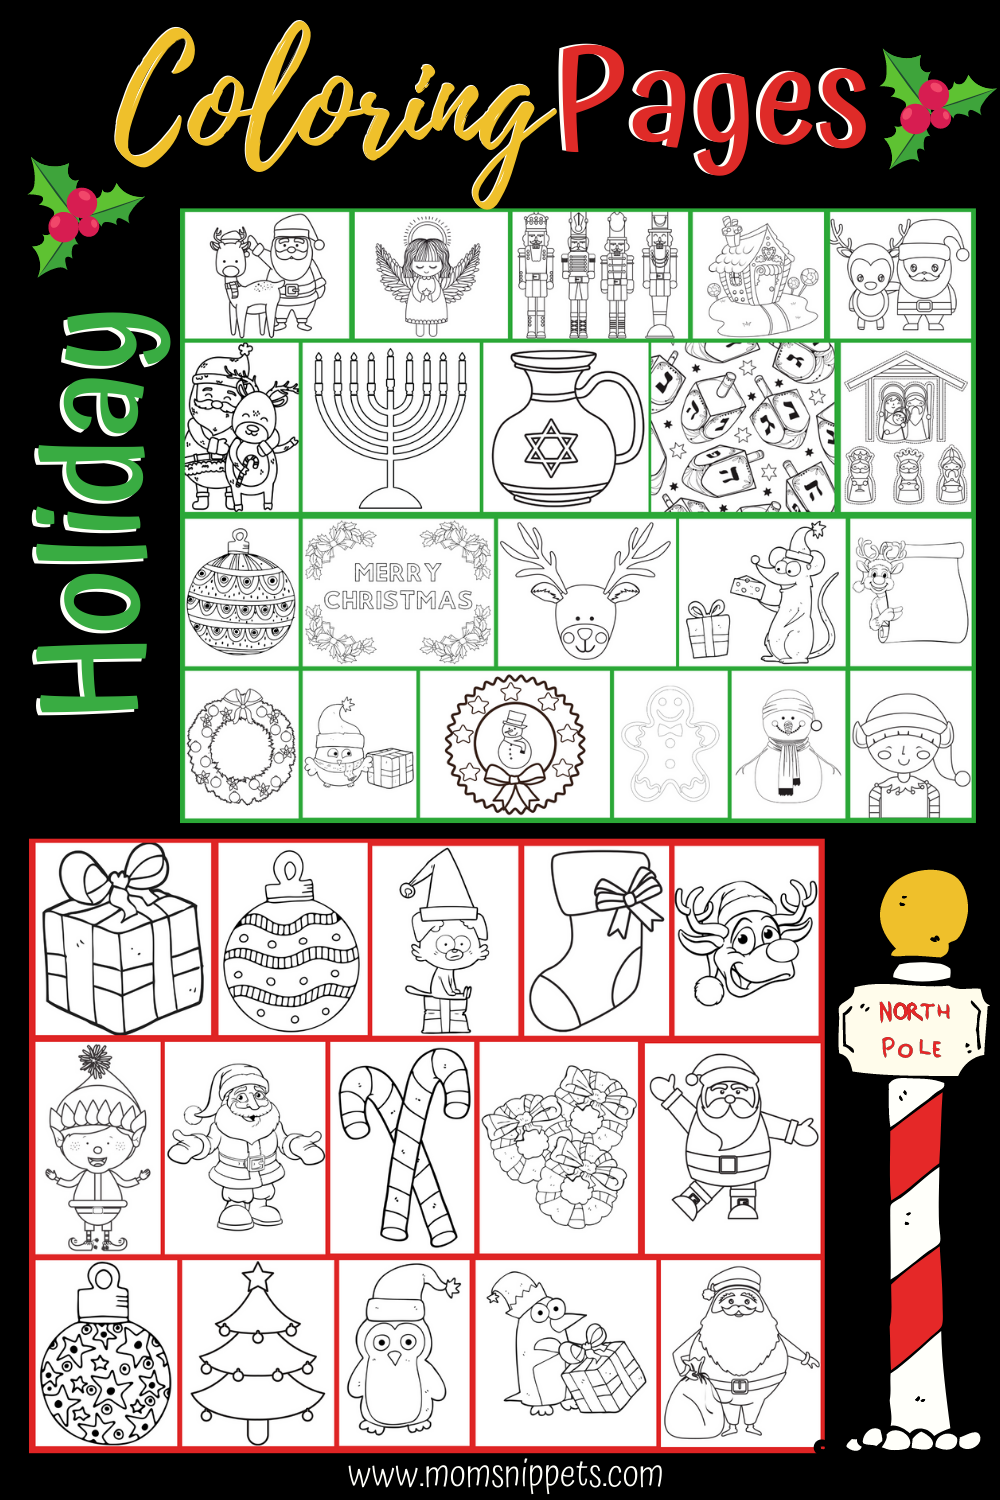 Christmas And Hanukkah Coloring Pages Printable Activities For Kids Craft Activities For Toddlers Advice For New Moms [ 1500 x 1000 Pixel ]